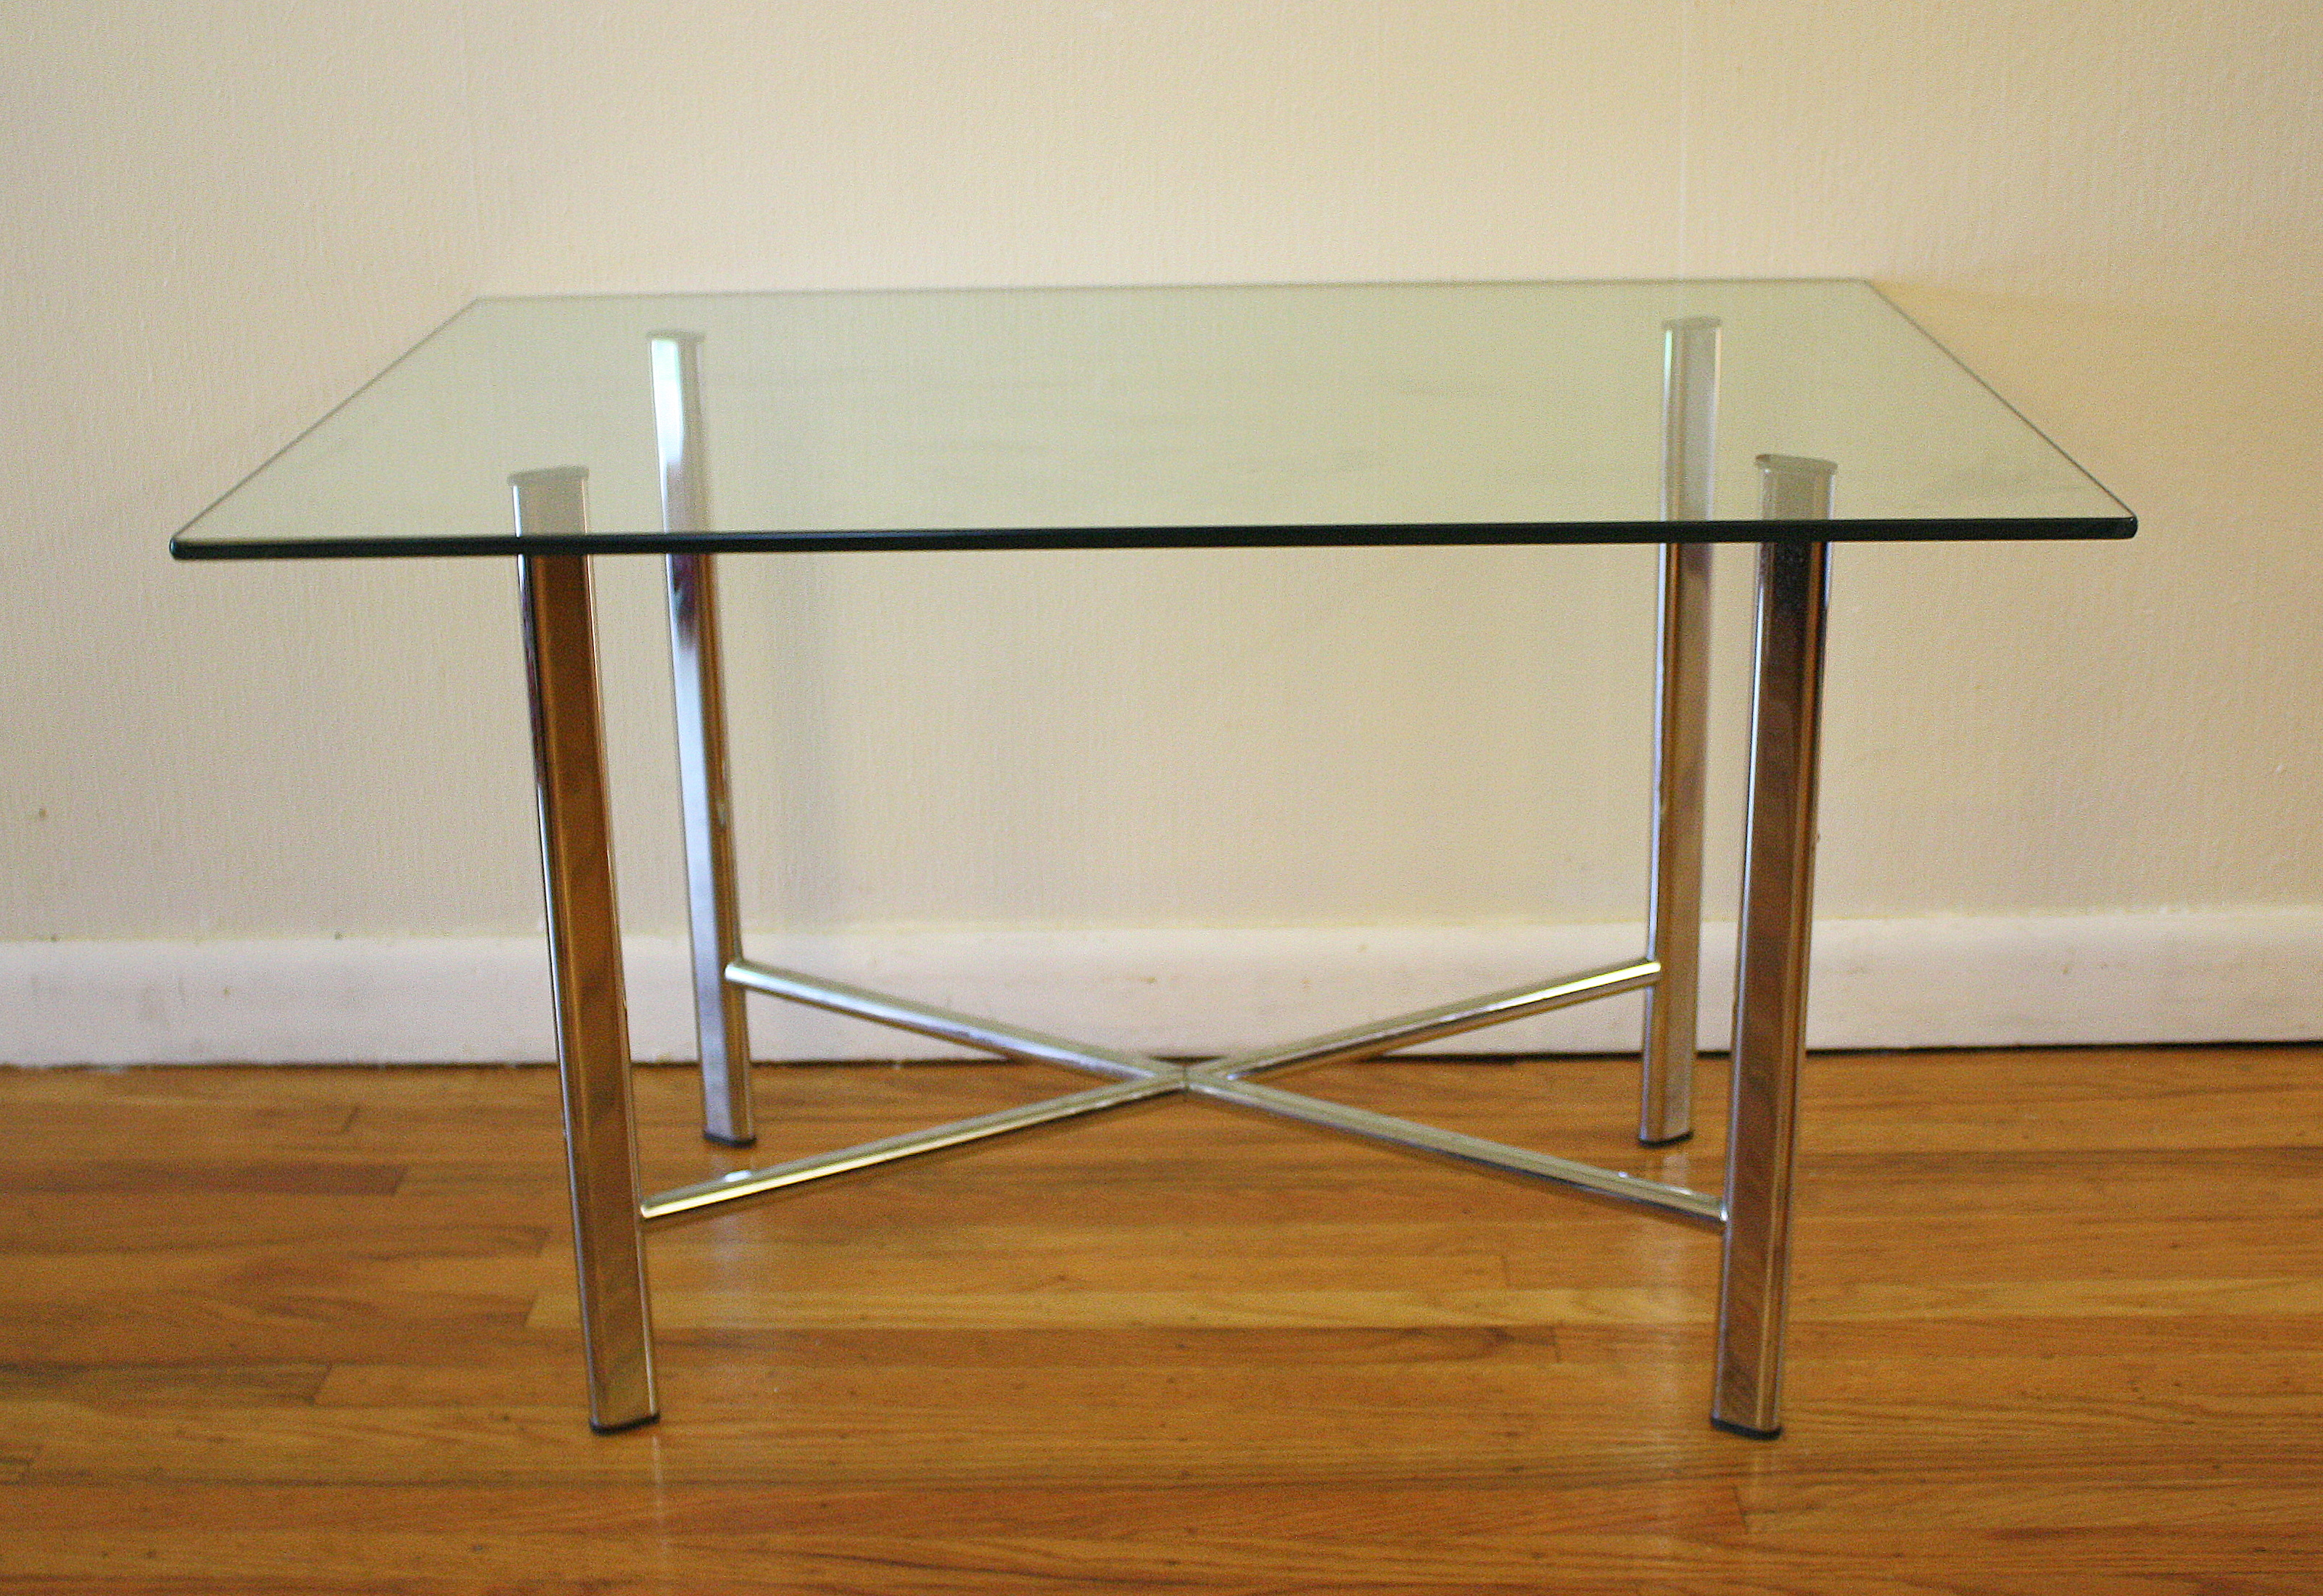 Design Bijzettafel Glas Mid Century Modern Glass And Chrome Tables | Picked Vintage